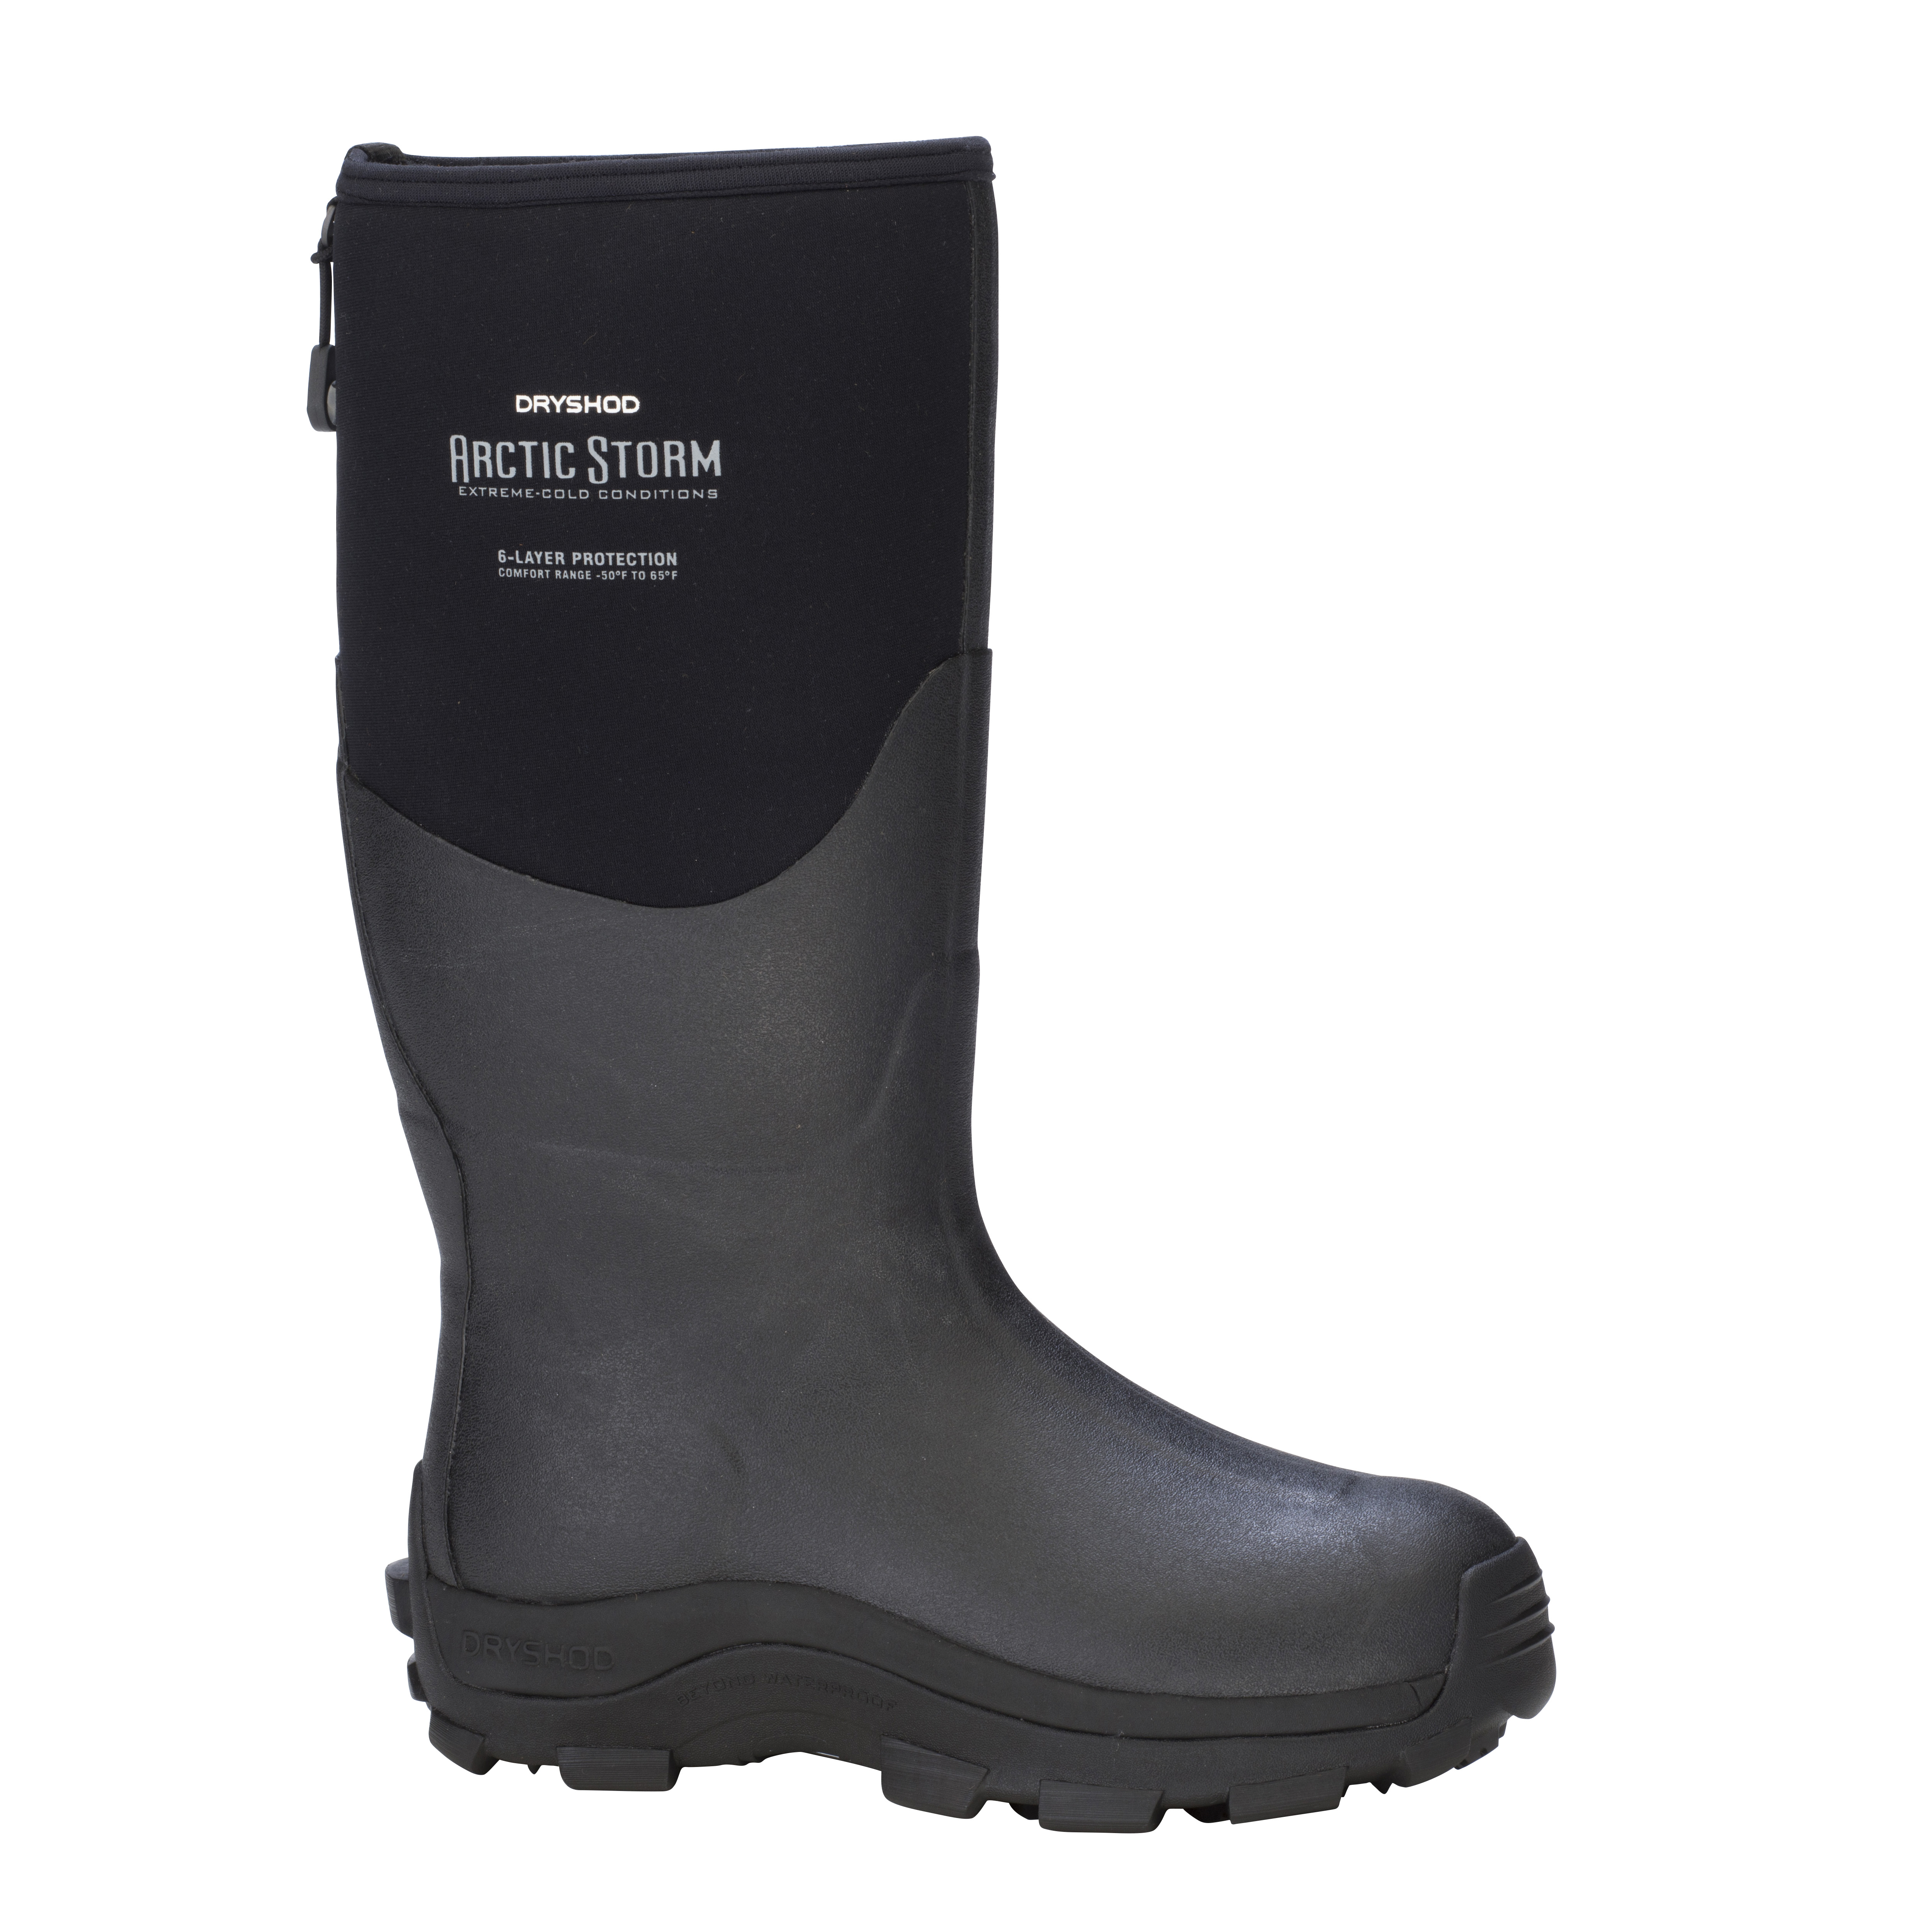 Arctic Storm Men's Winter Boot #ARS-MH-BK